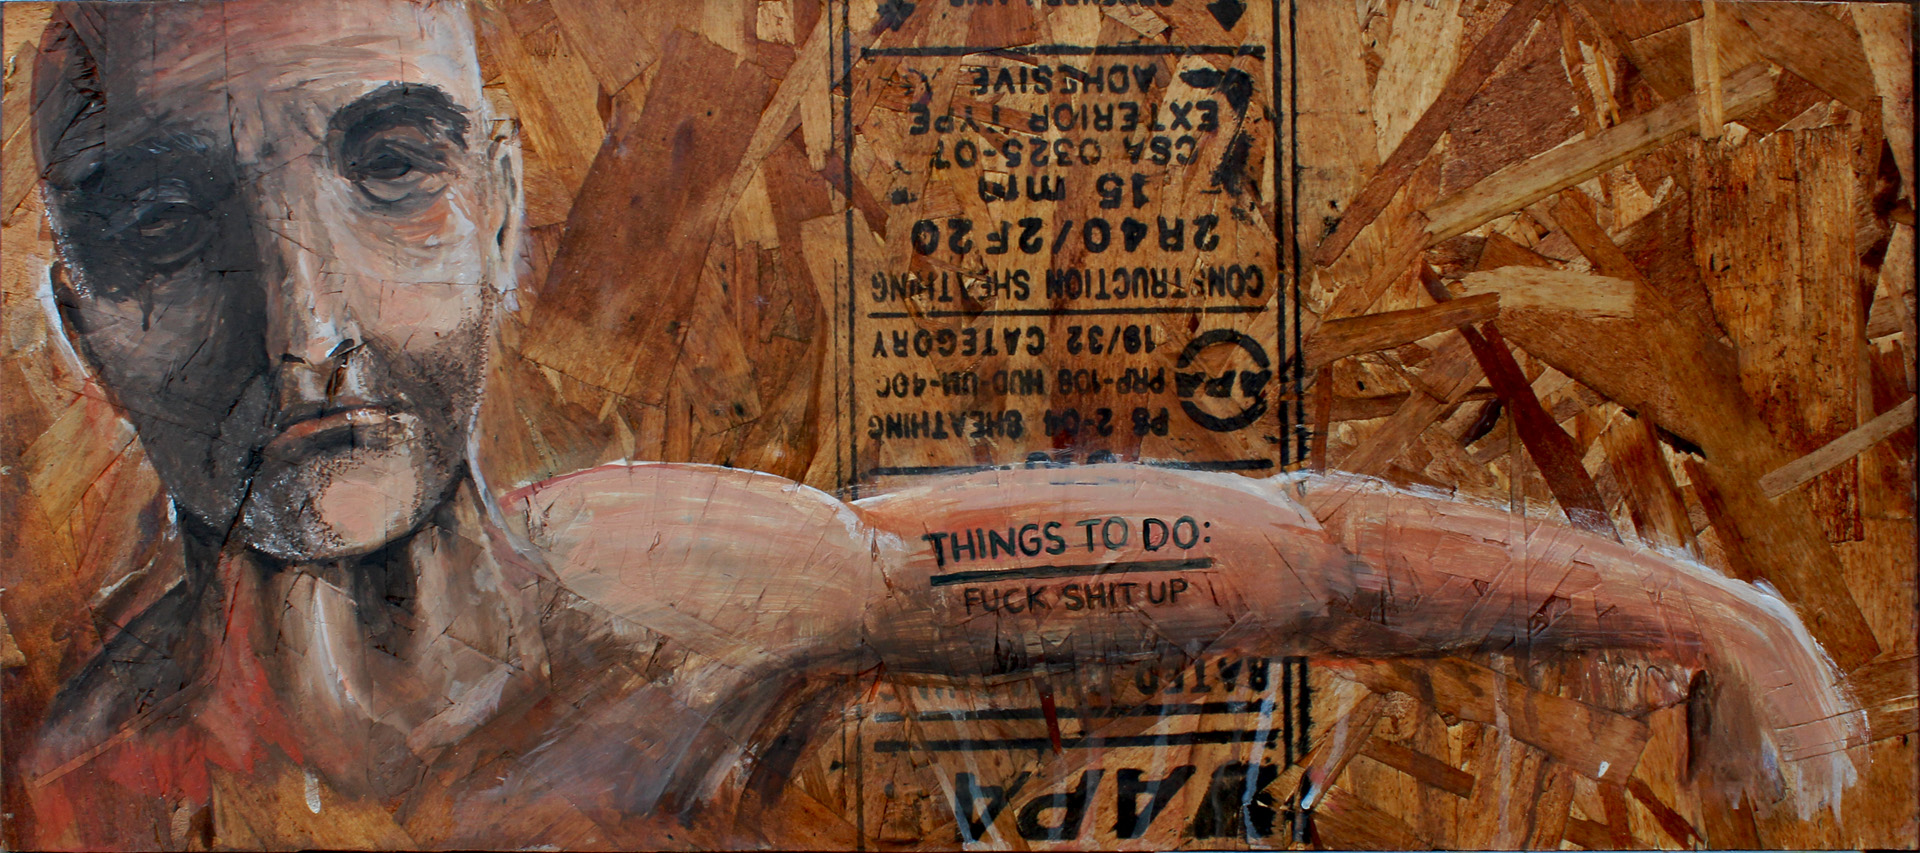 Things To Do_brandonroth_2012_lores